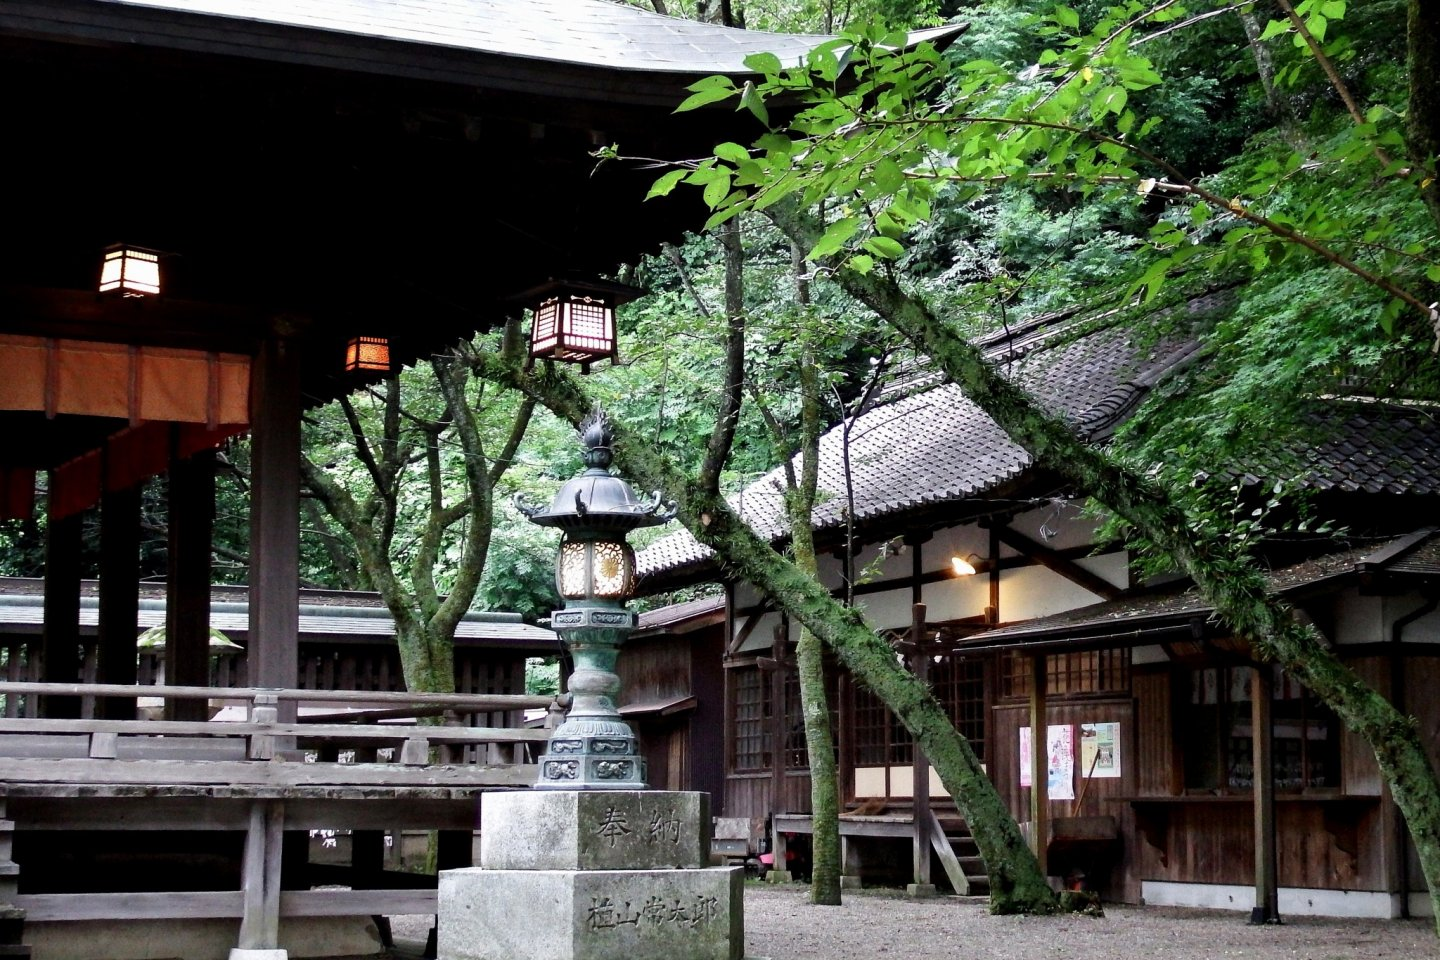 Buildings on the grounds of Kanegasaki Shrine